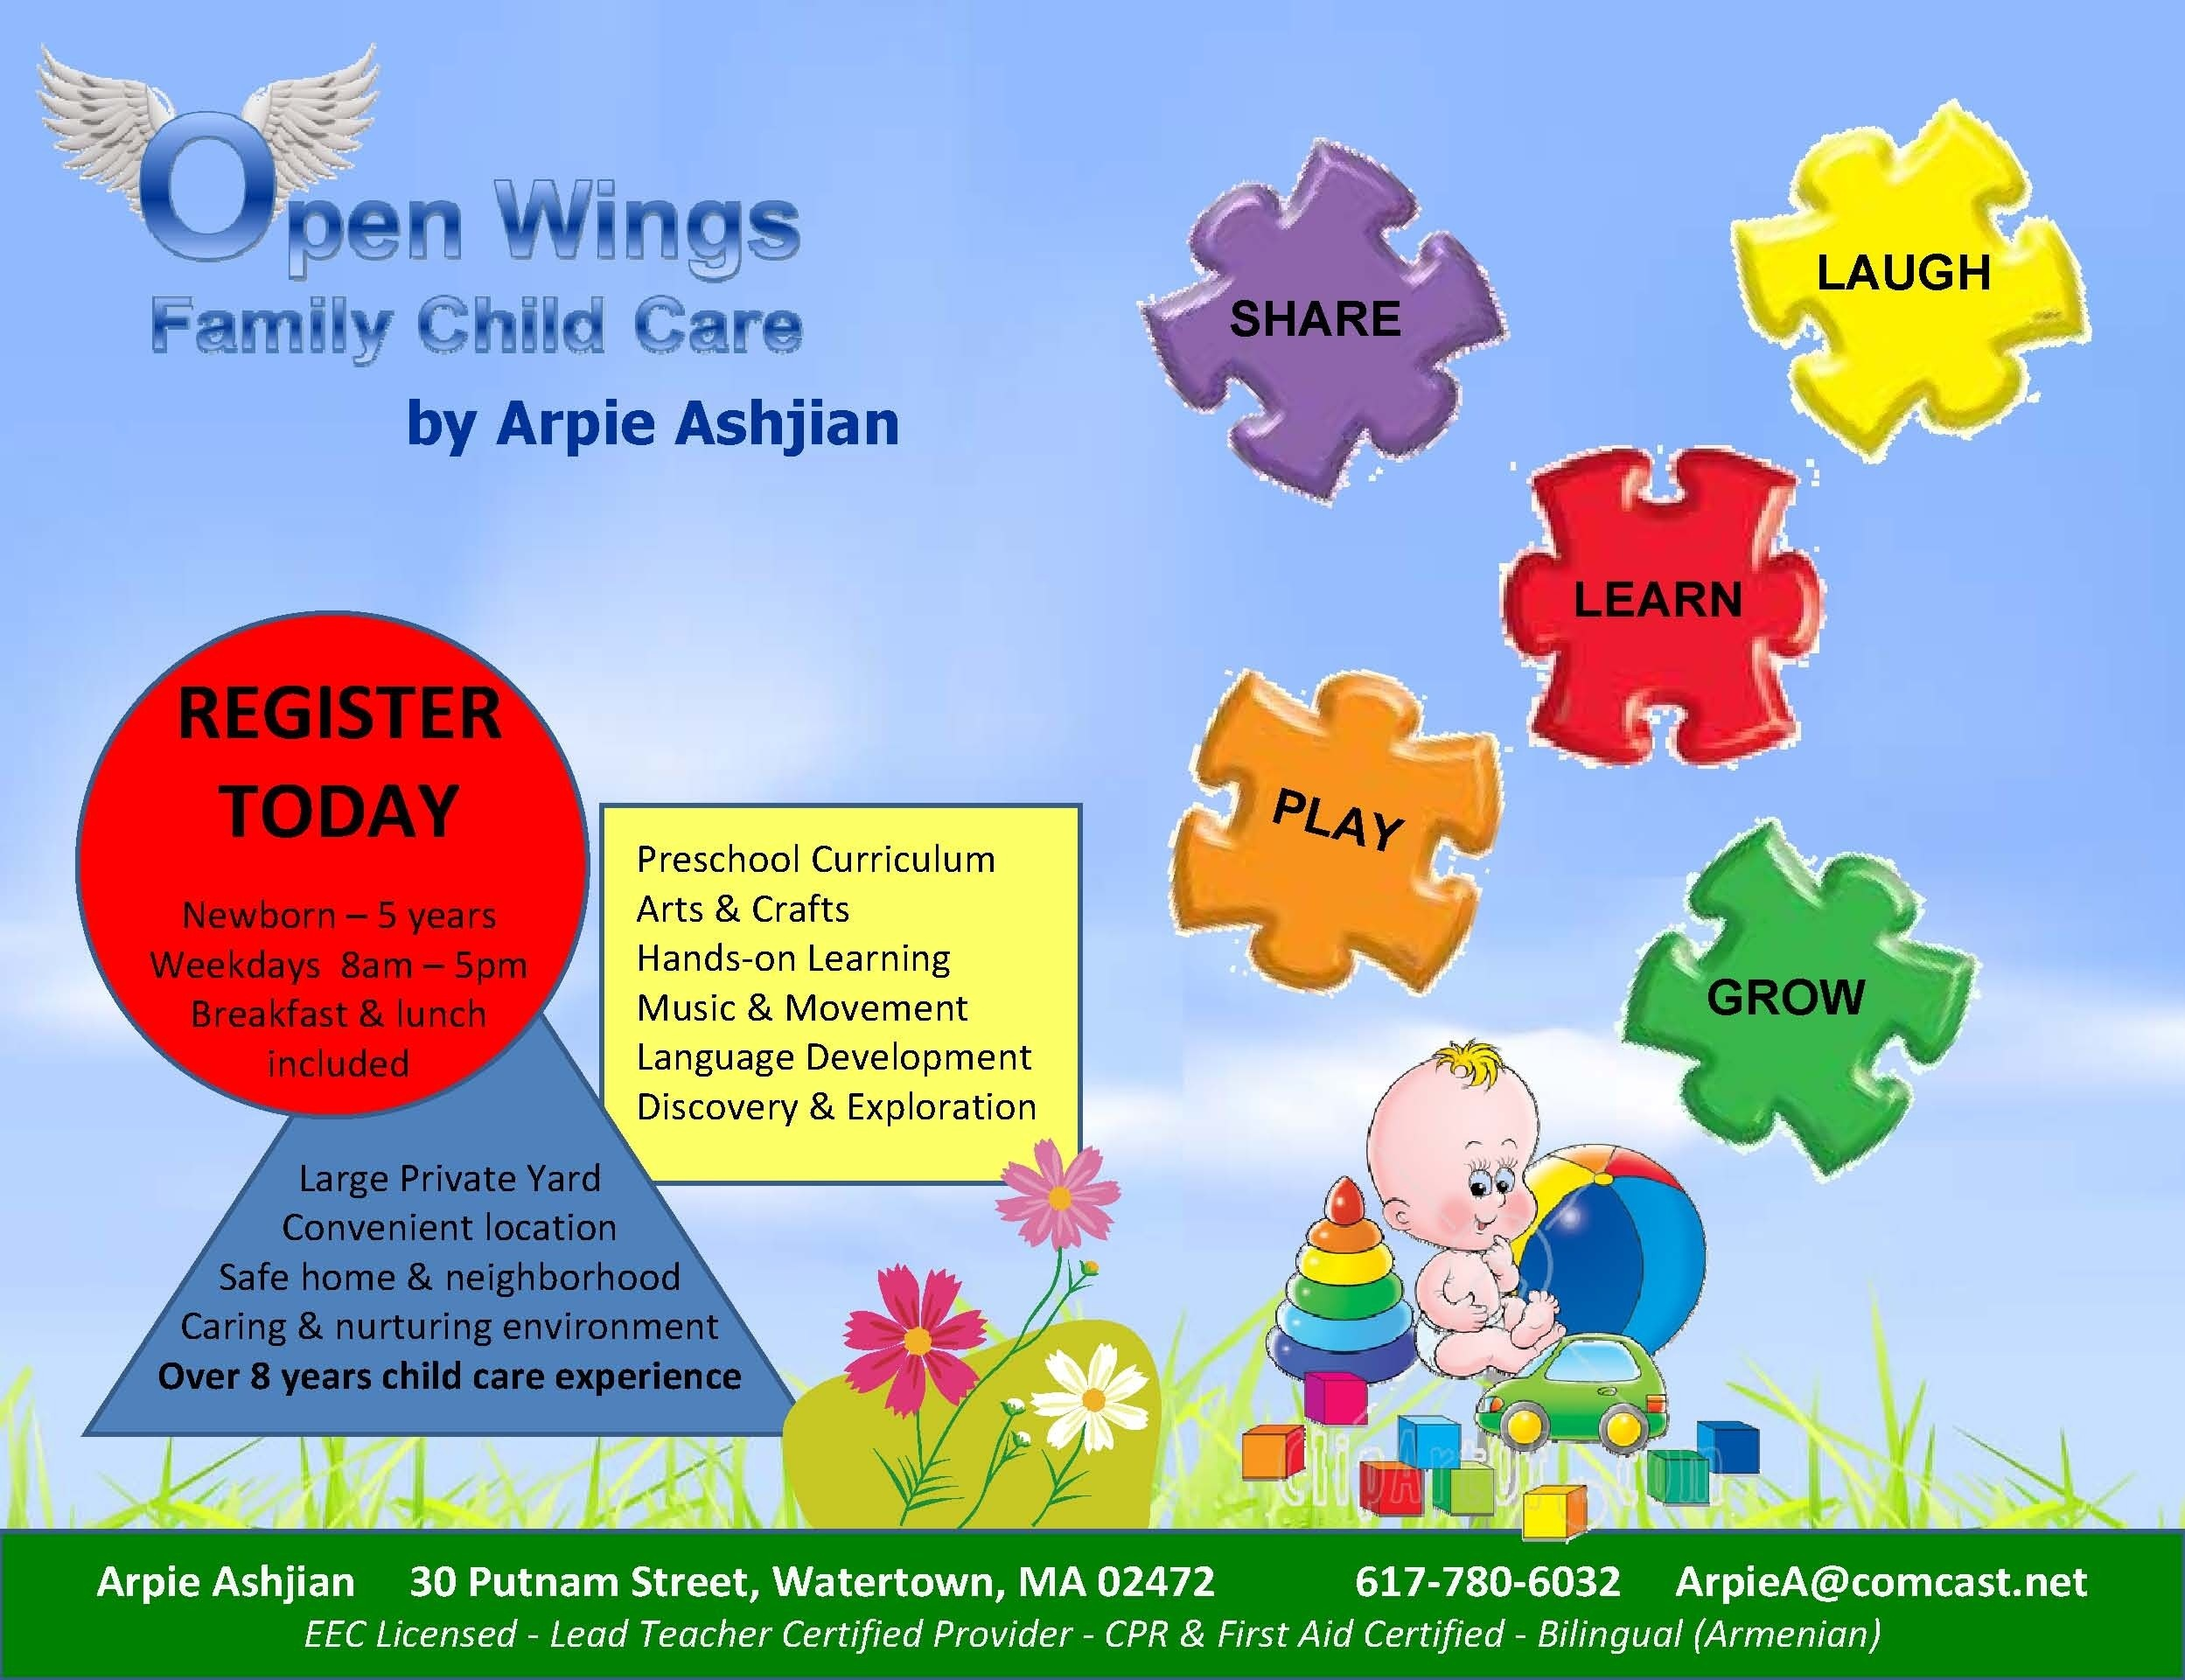 002 Template Ideas Sample Flyer Free Daycare Stunning Templates - Free Printable Home Daycare Flyers